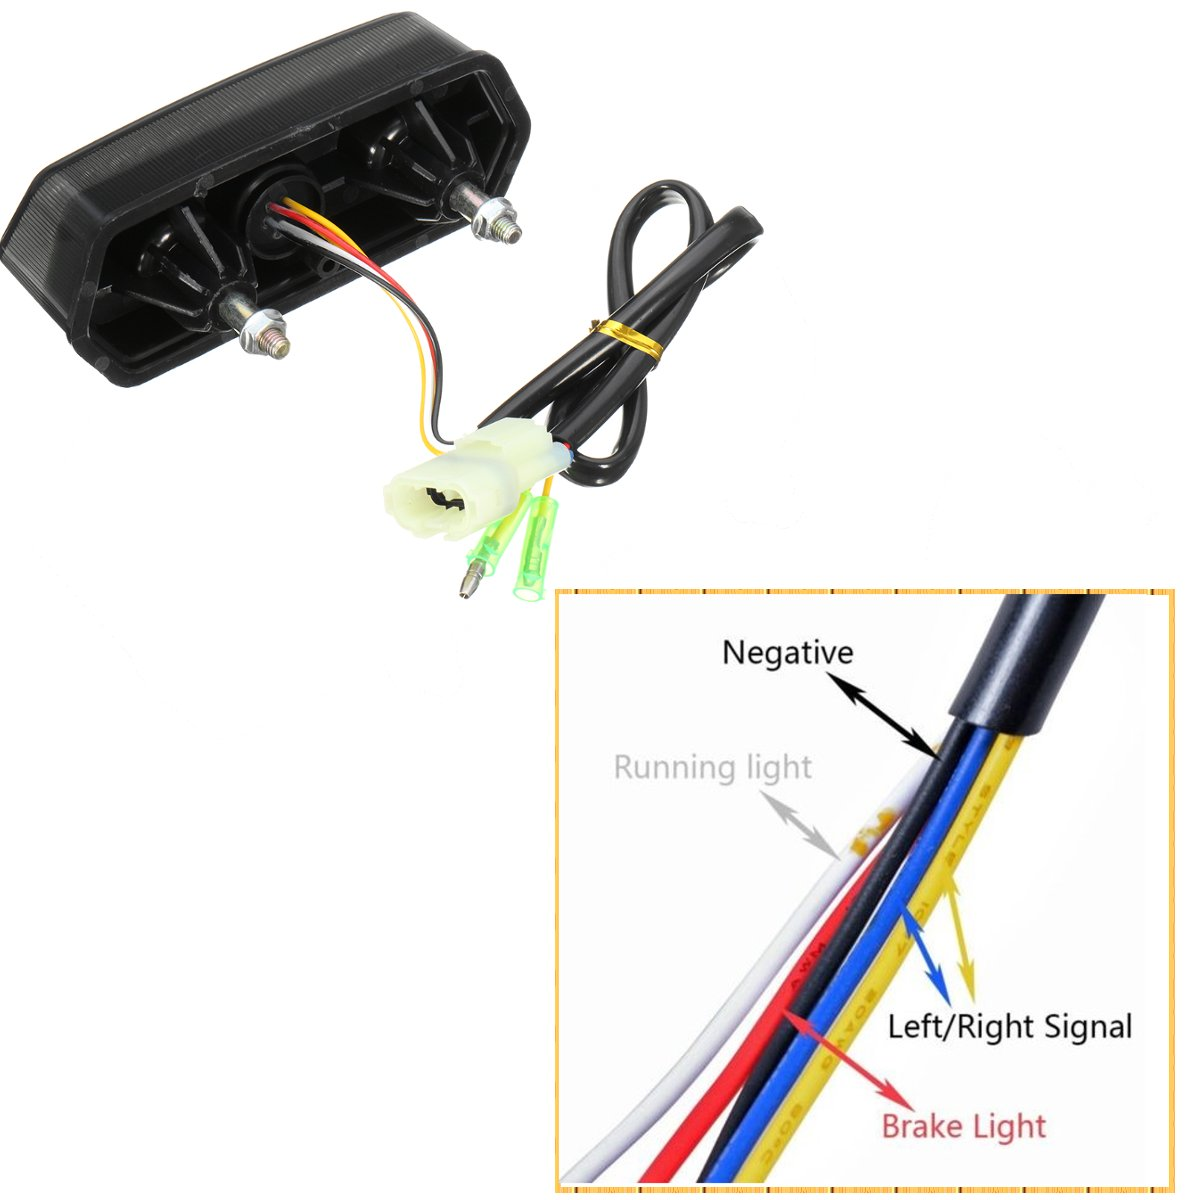 Motorcycle Integrated Tail Light Wiring Harness Manufacturers Uk